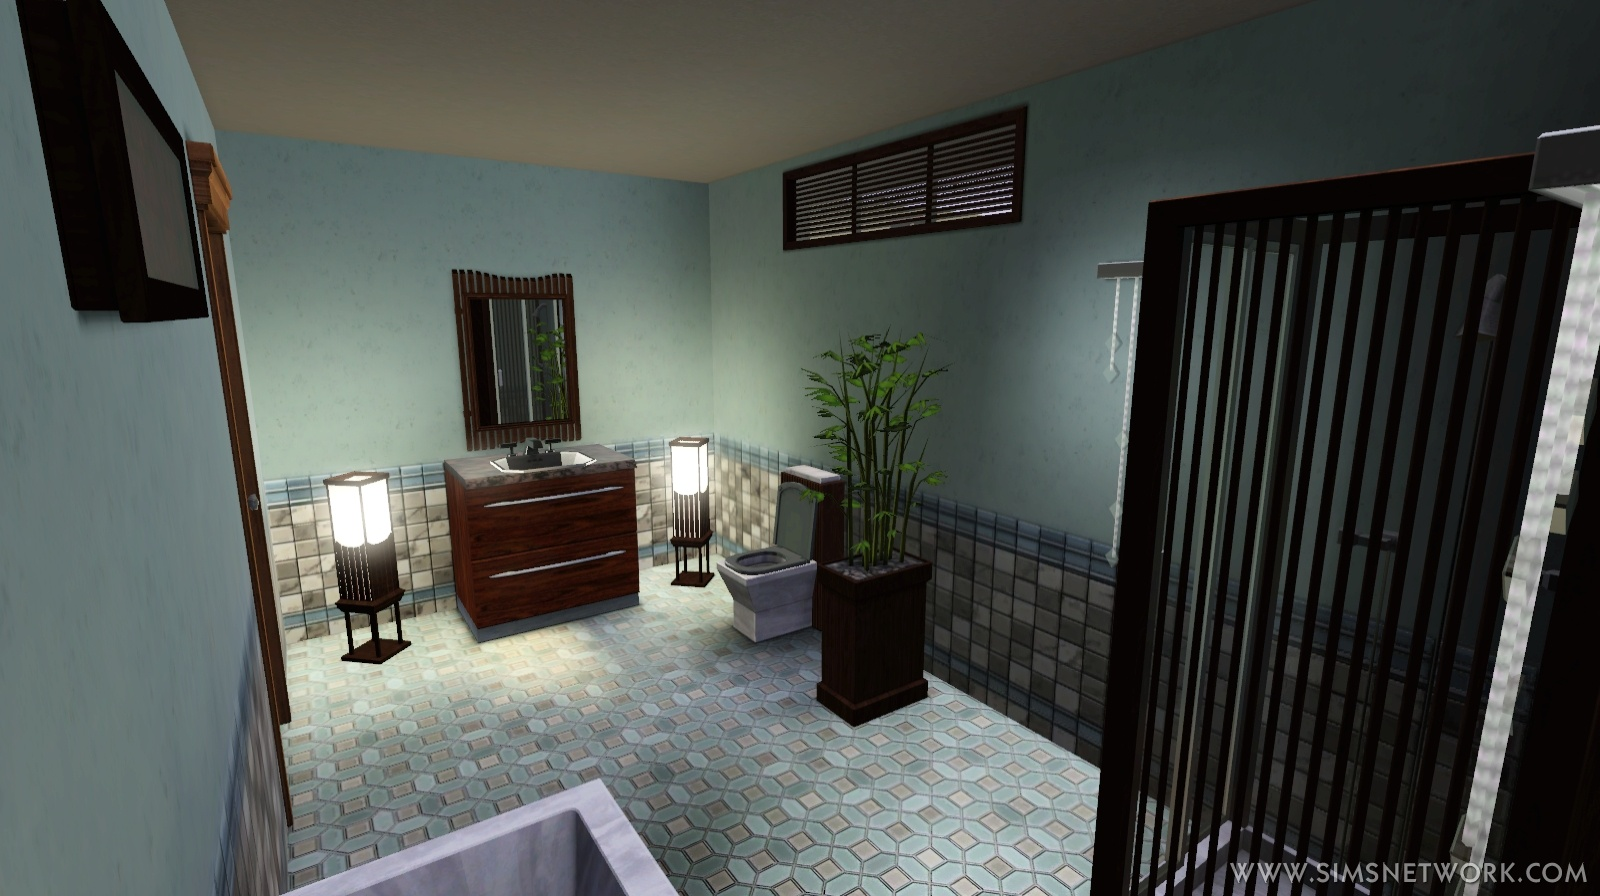 The sims 3 master suite stuff review snw for Sims 3 master bedroom ideas